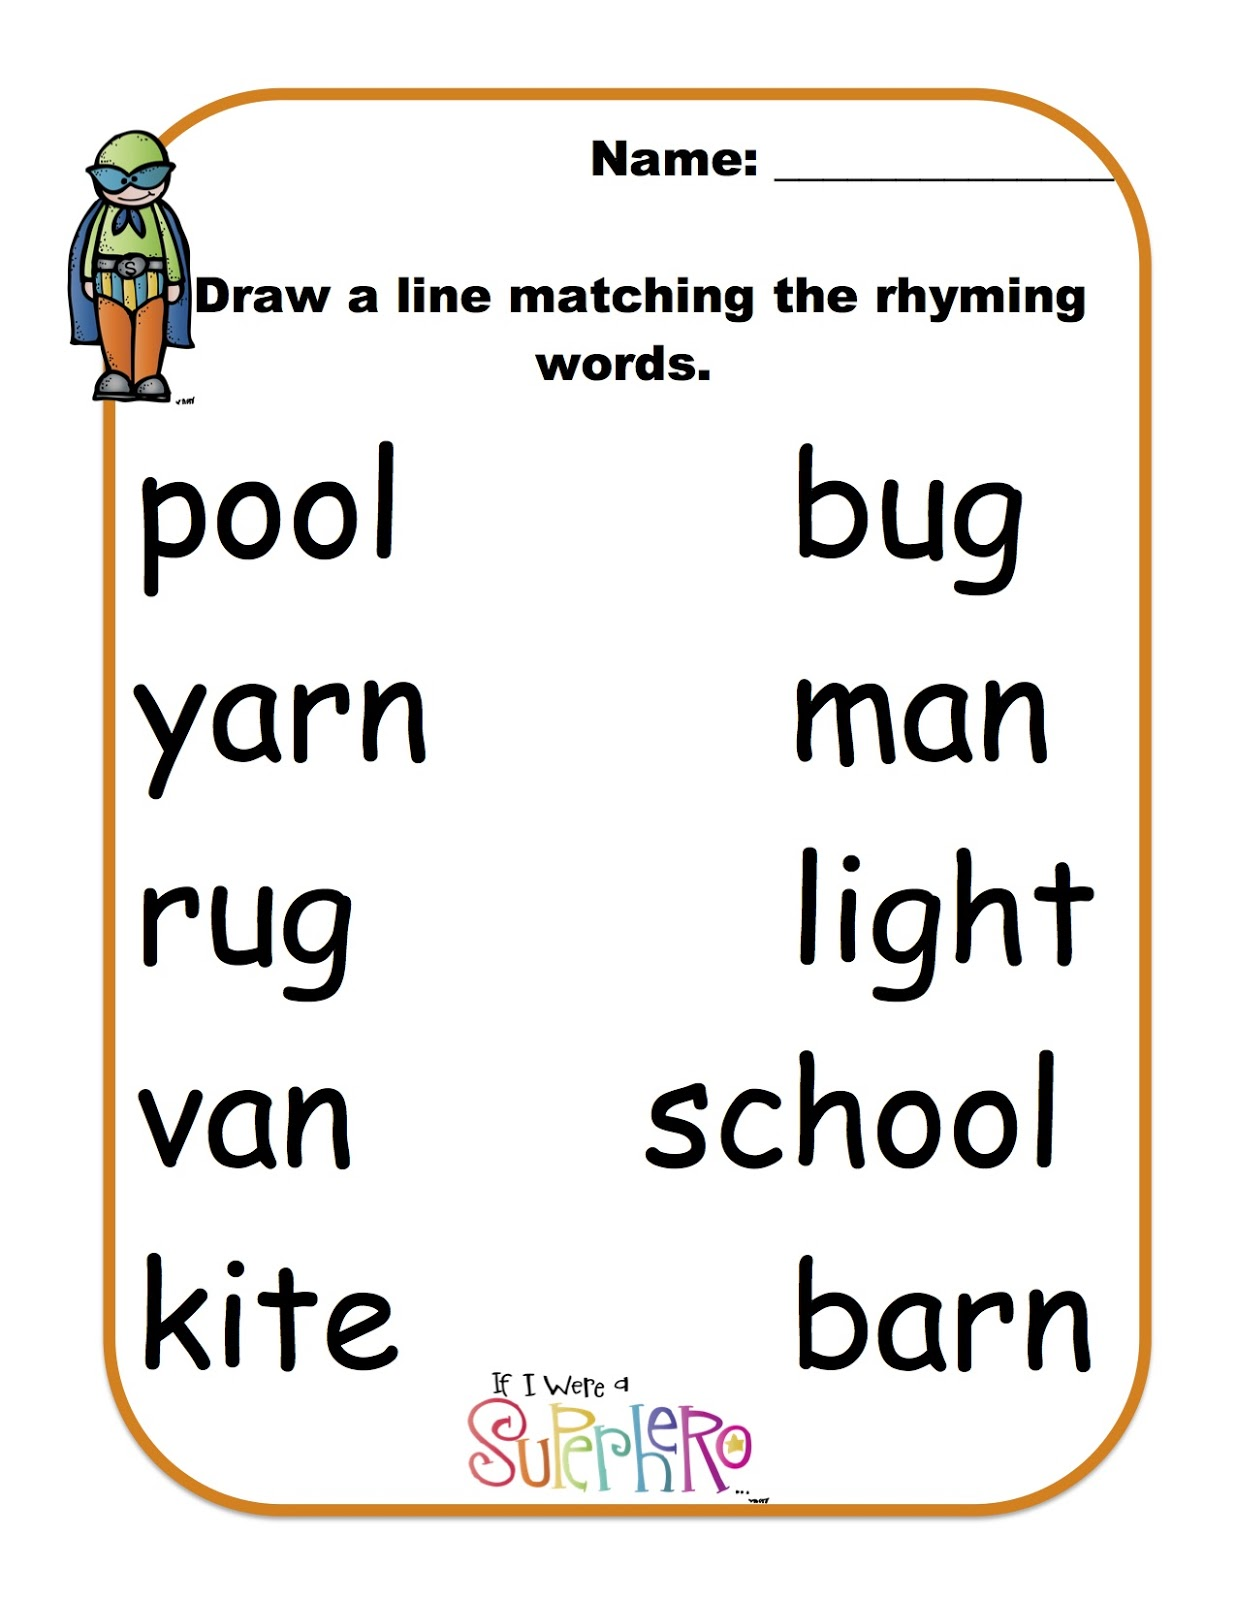 Worksheet Rhyming Words For Preschoolers rhyming words with super heros preschool printables heros